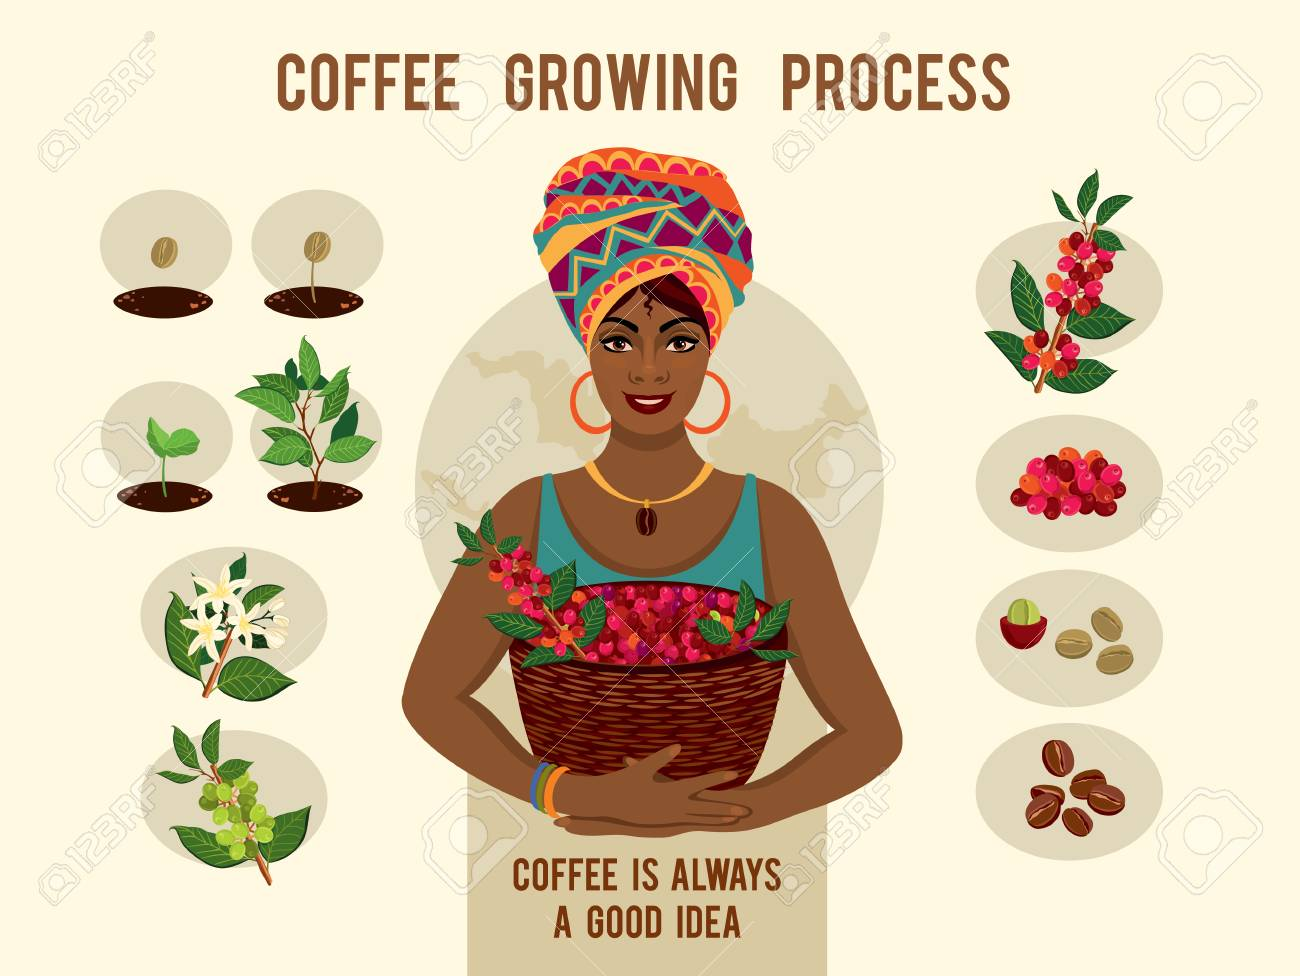 Poster with process of planting and growing a coffee tree. Beautiful woman is a coffee farmer with a basket of coffee berries. - 94598092